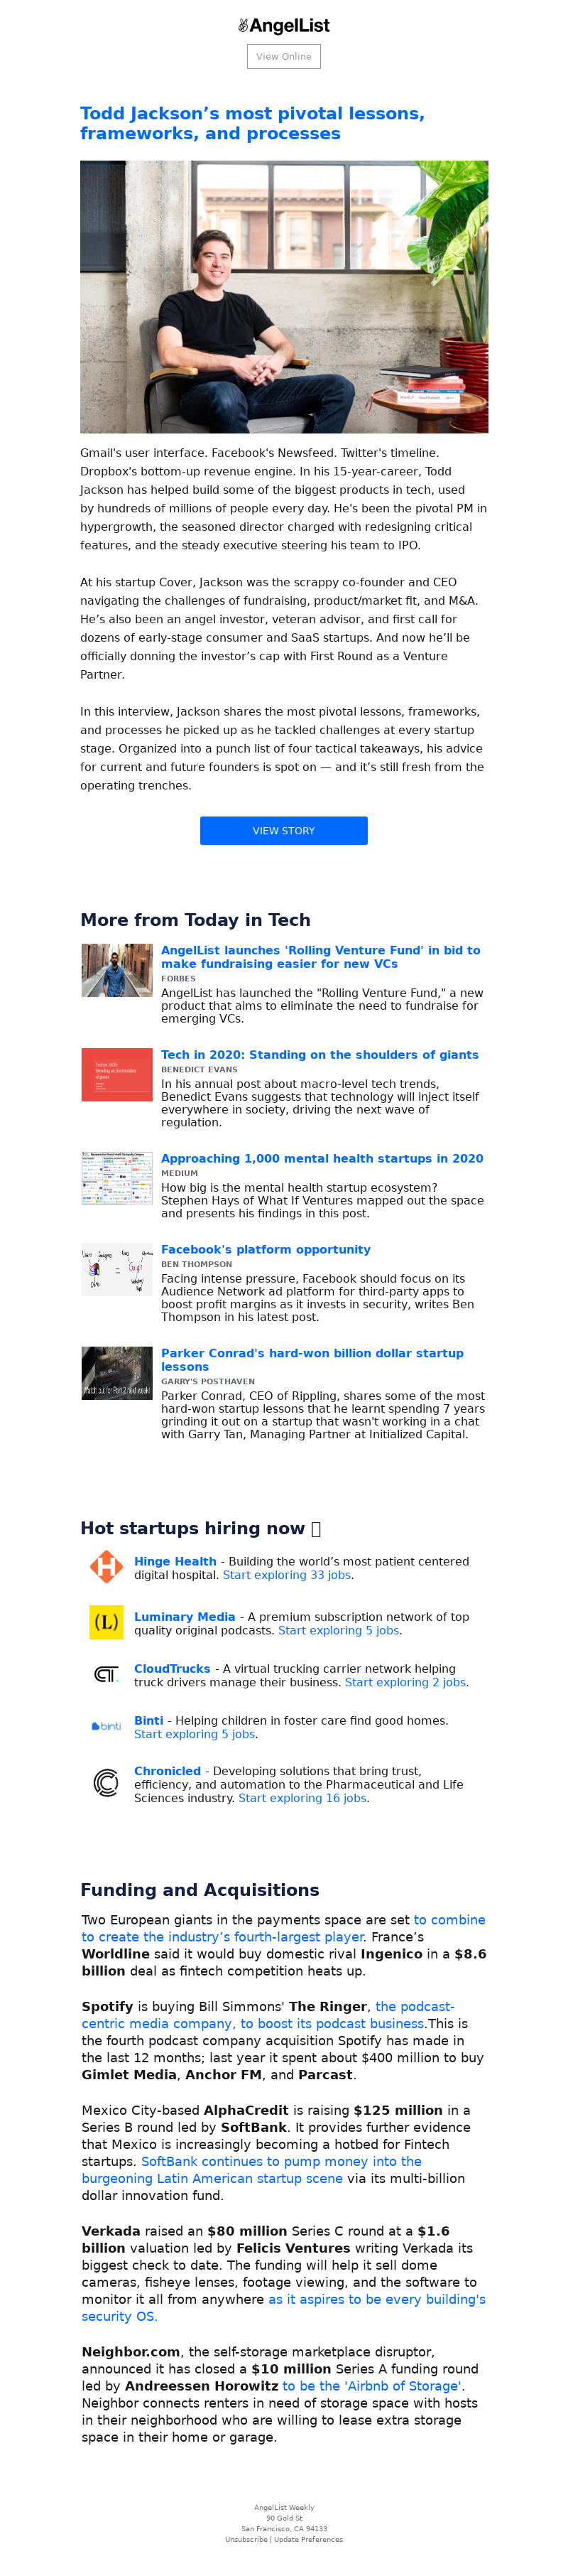 AngelList View Online Todd Jackson's most pivotal lessons, frameworks, and